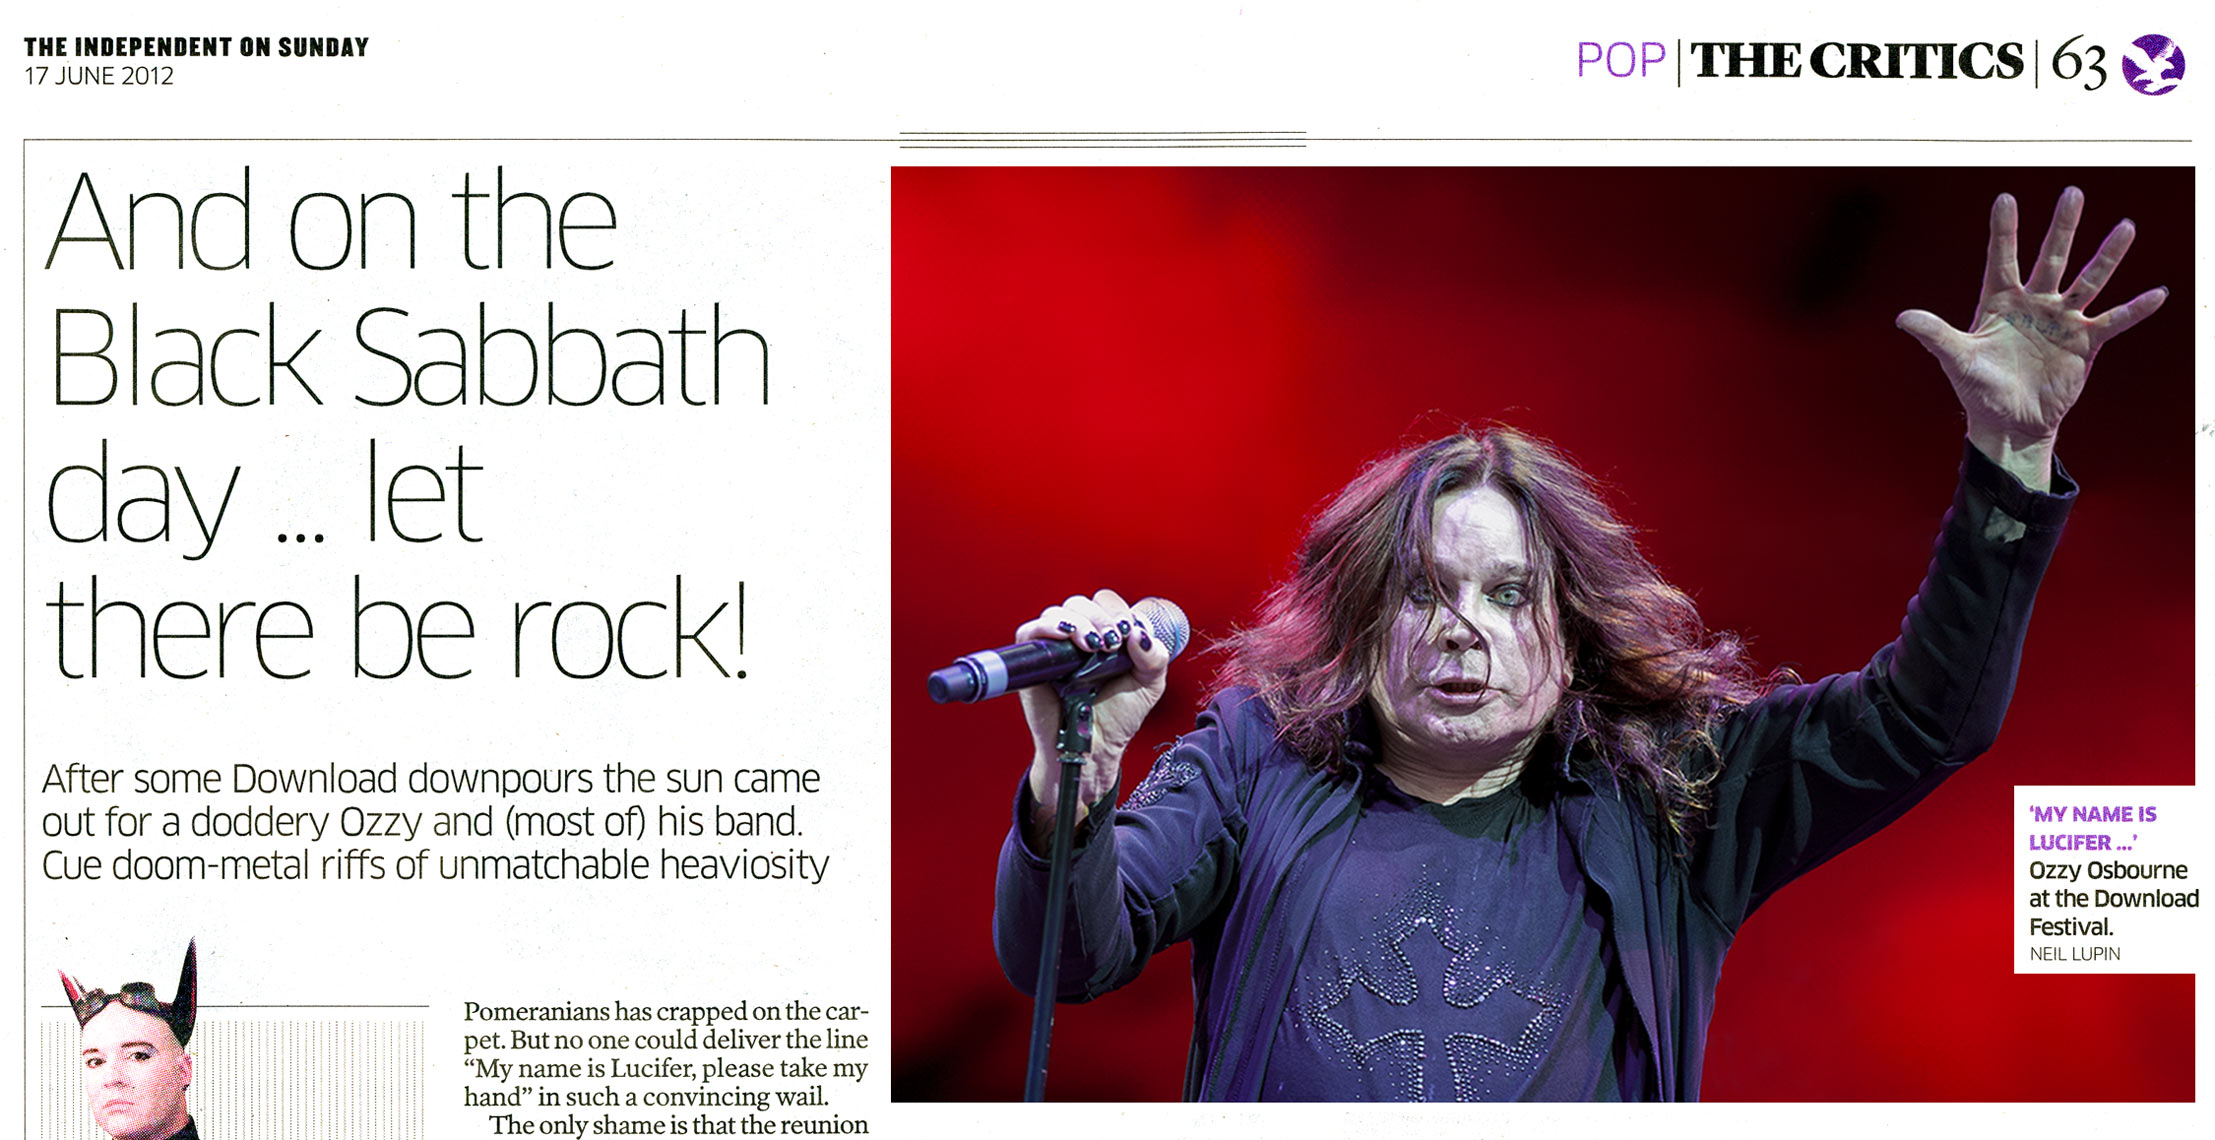 Black-Sabbath-Independent-on-Sunday-edited.jpg